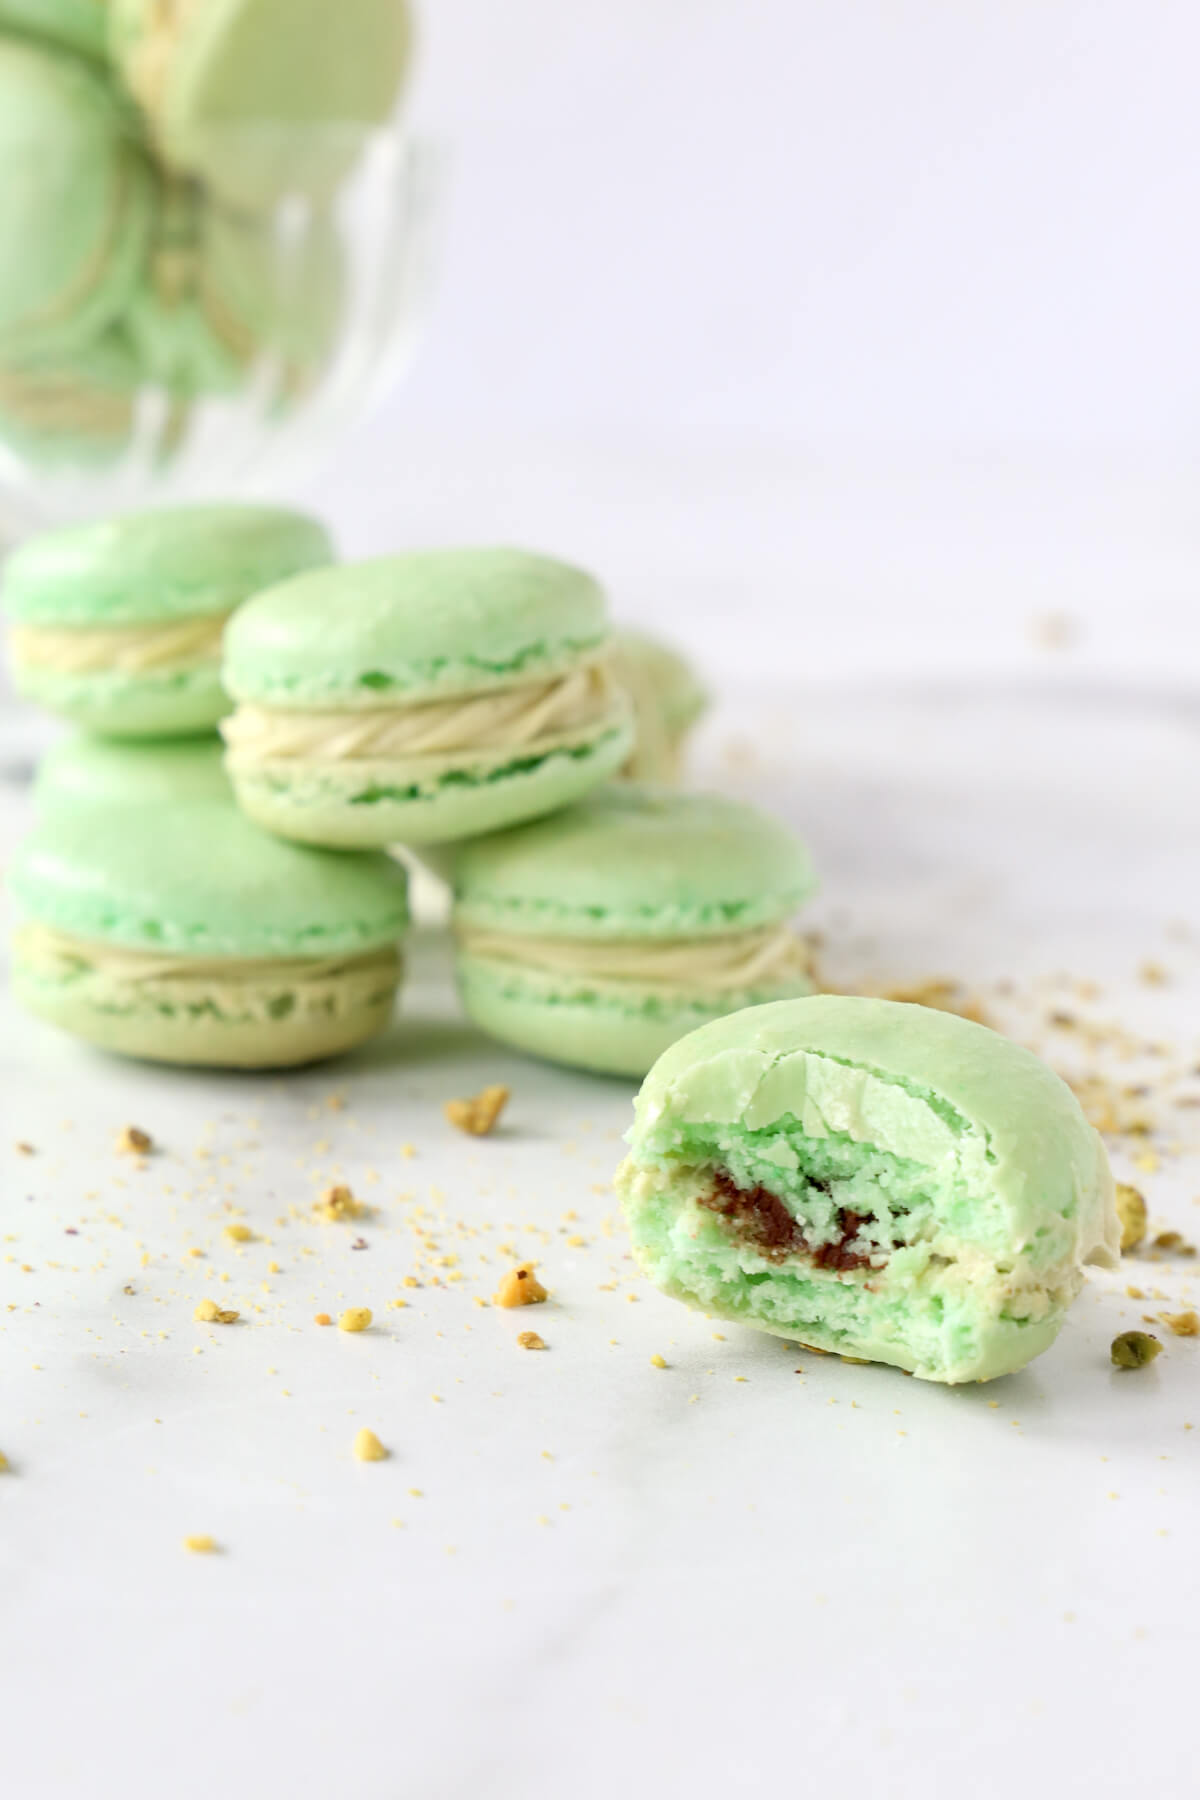 green cookies sandwiched together and one with a bite out of it.